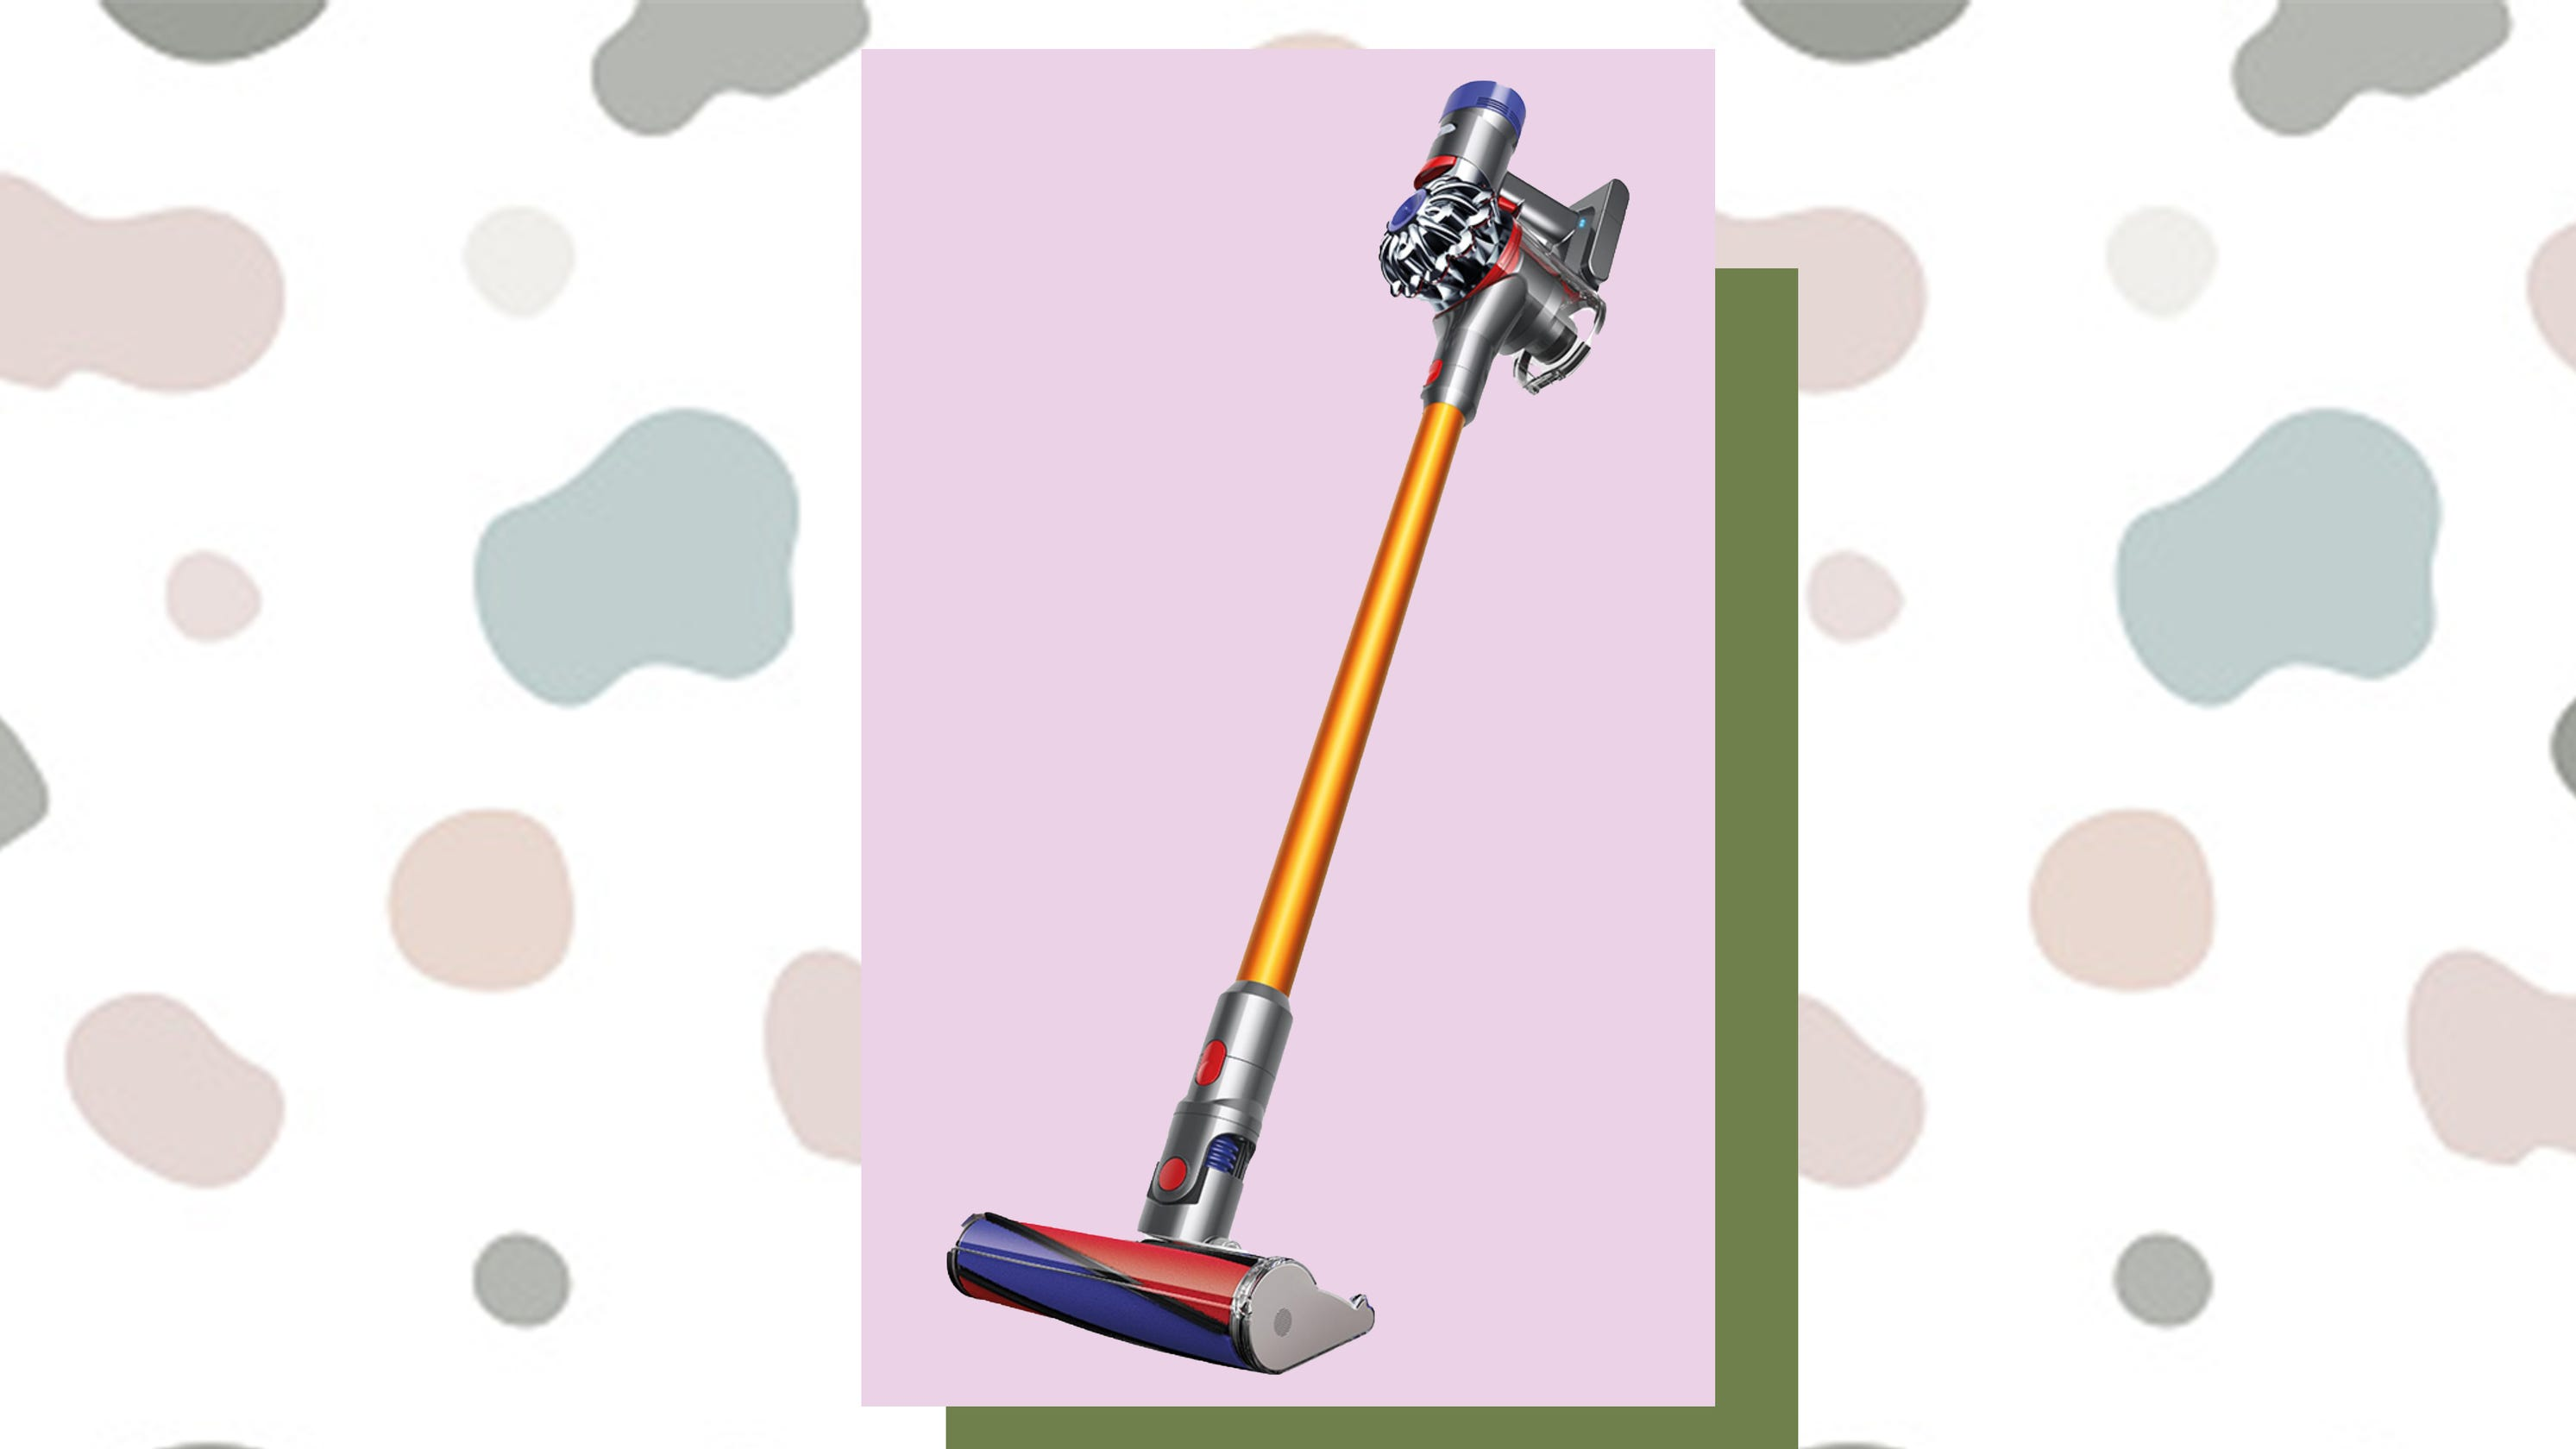 One of our favorite cordless Dyson vacuums is $150 off right now